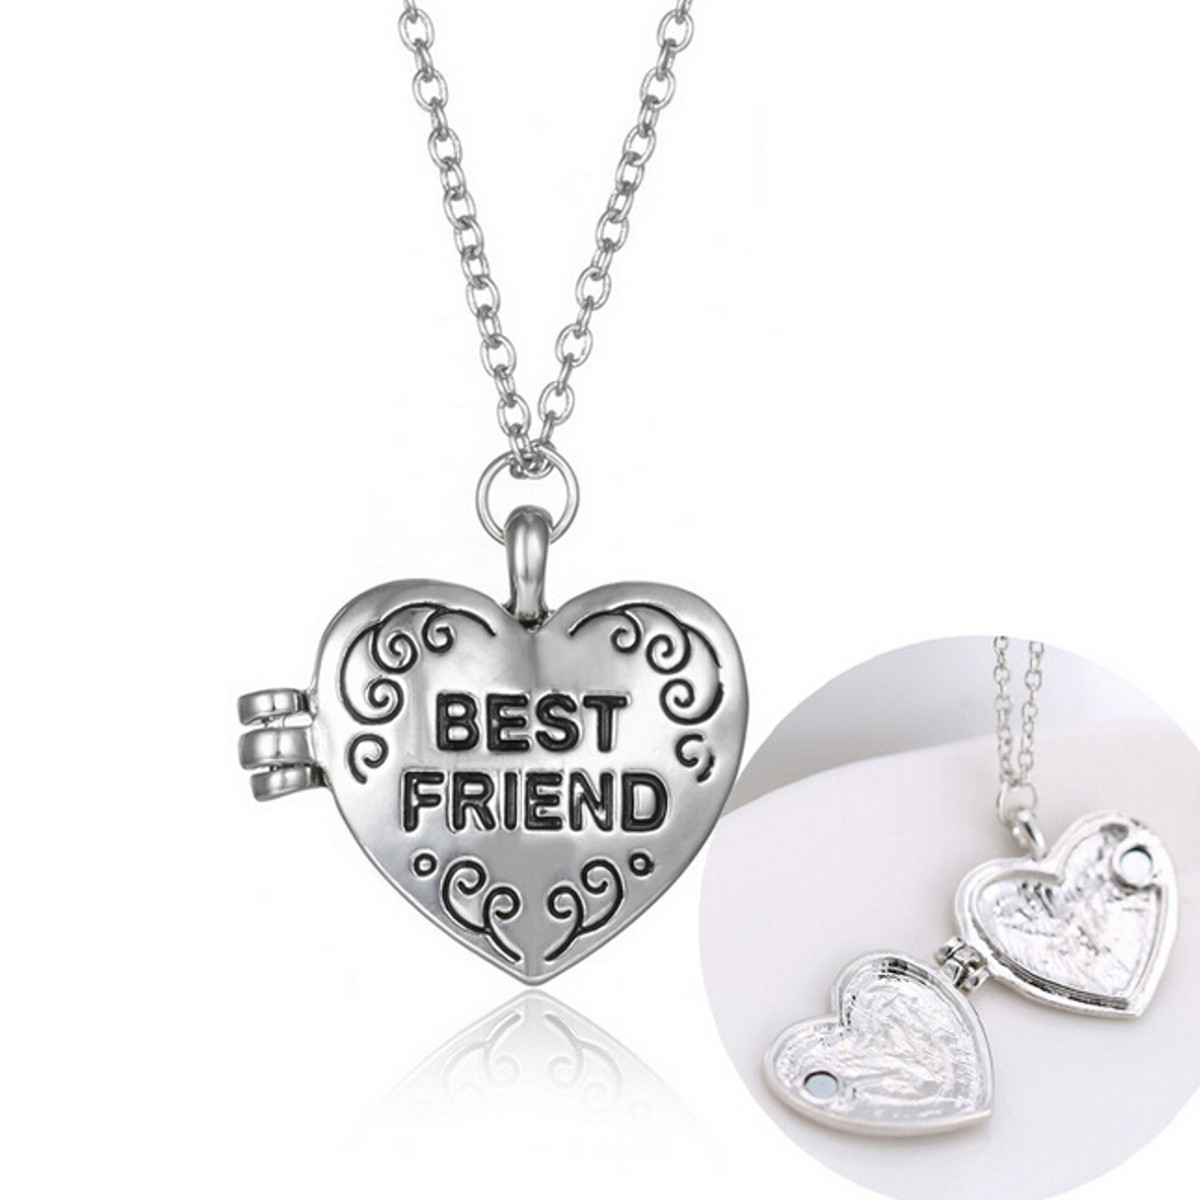 SIlver Crystal Rhinestone Heart Letter Moon Clavicle Women Necklace Chain